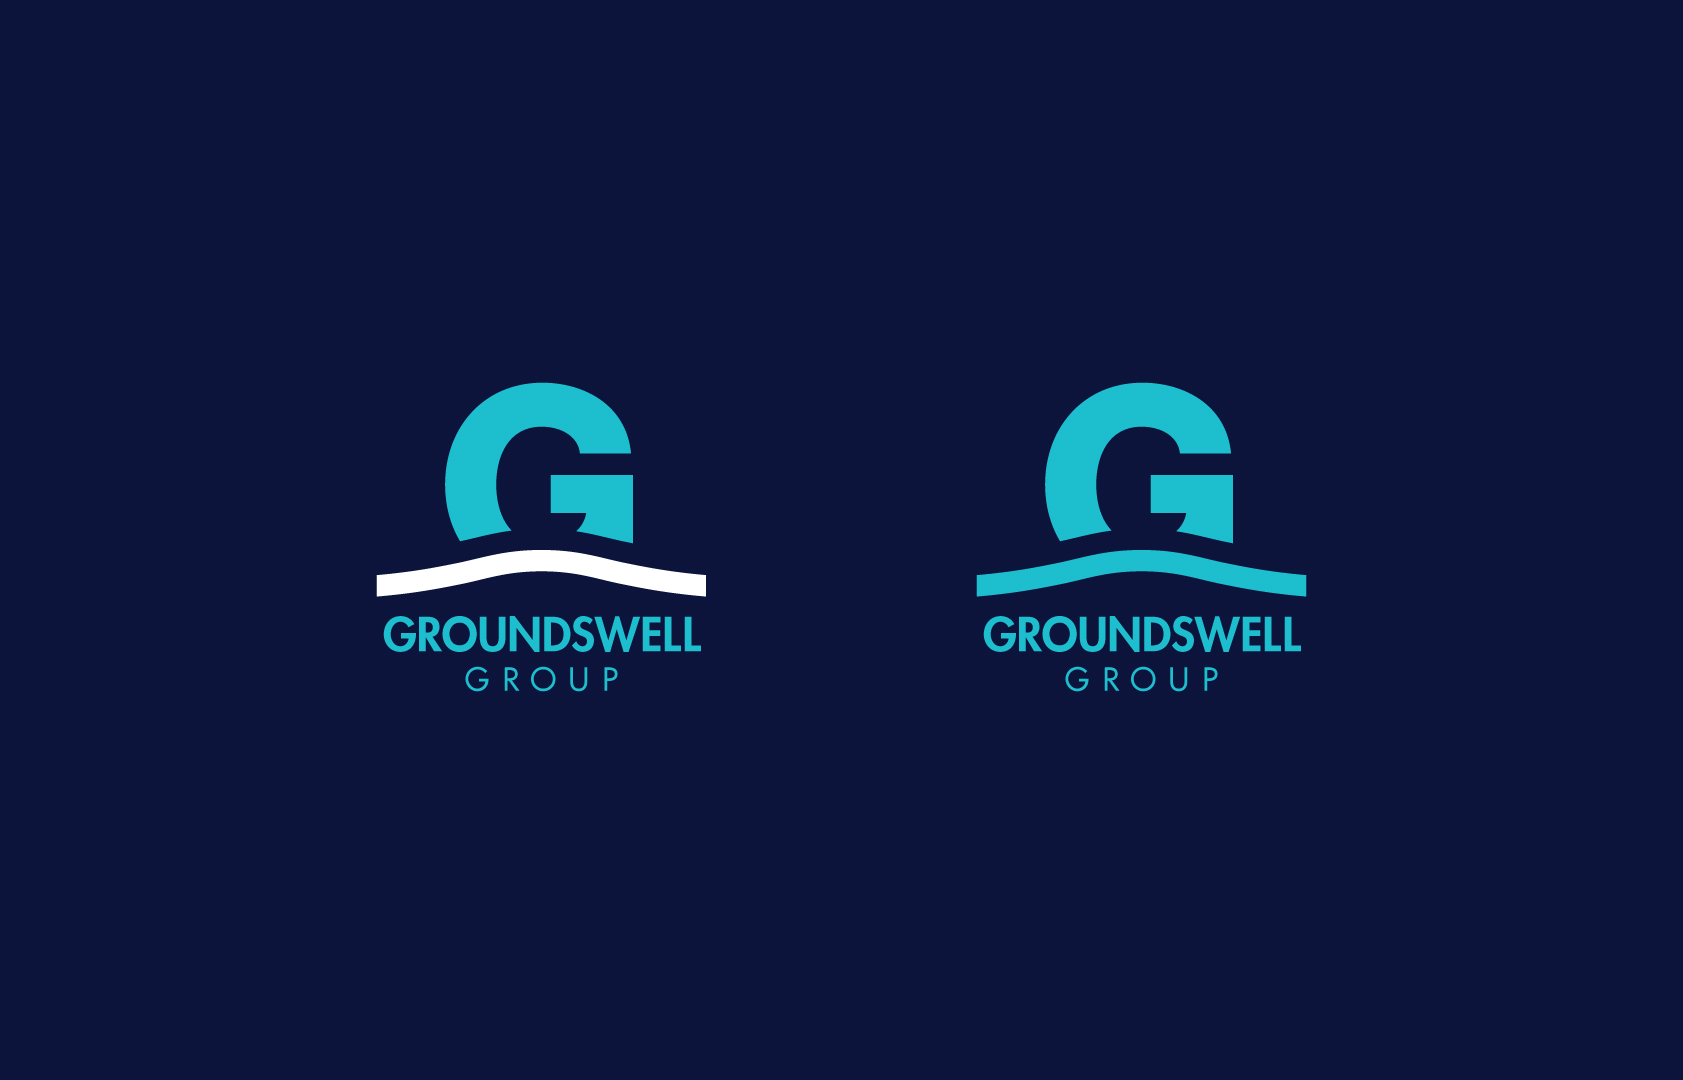 The Groundswell Group logo identity - reverse + monotone formats